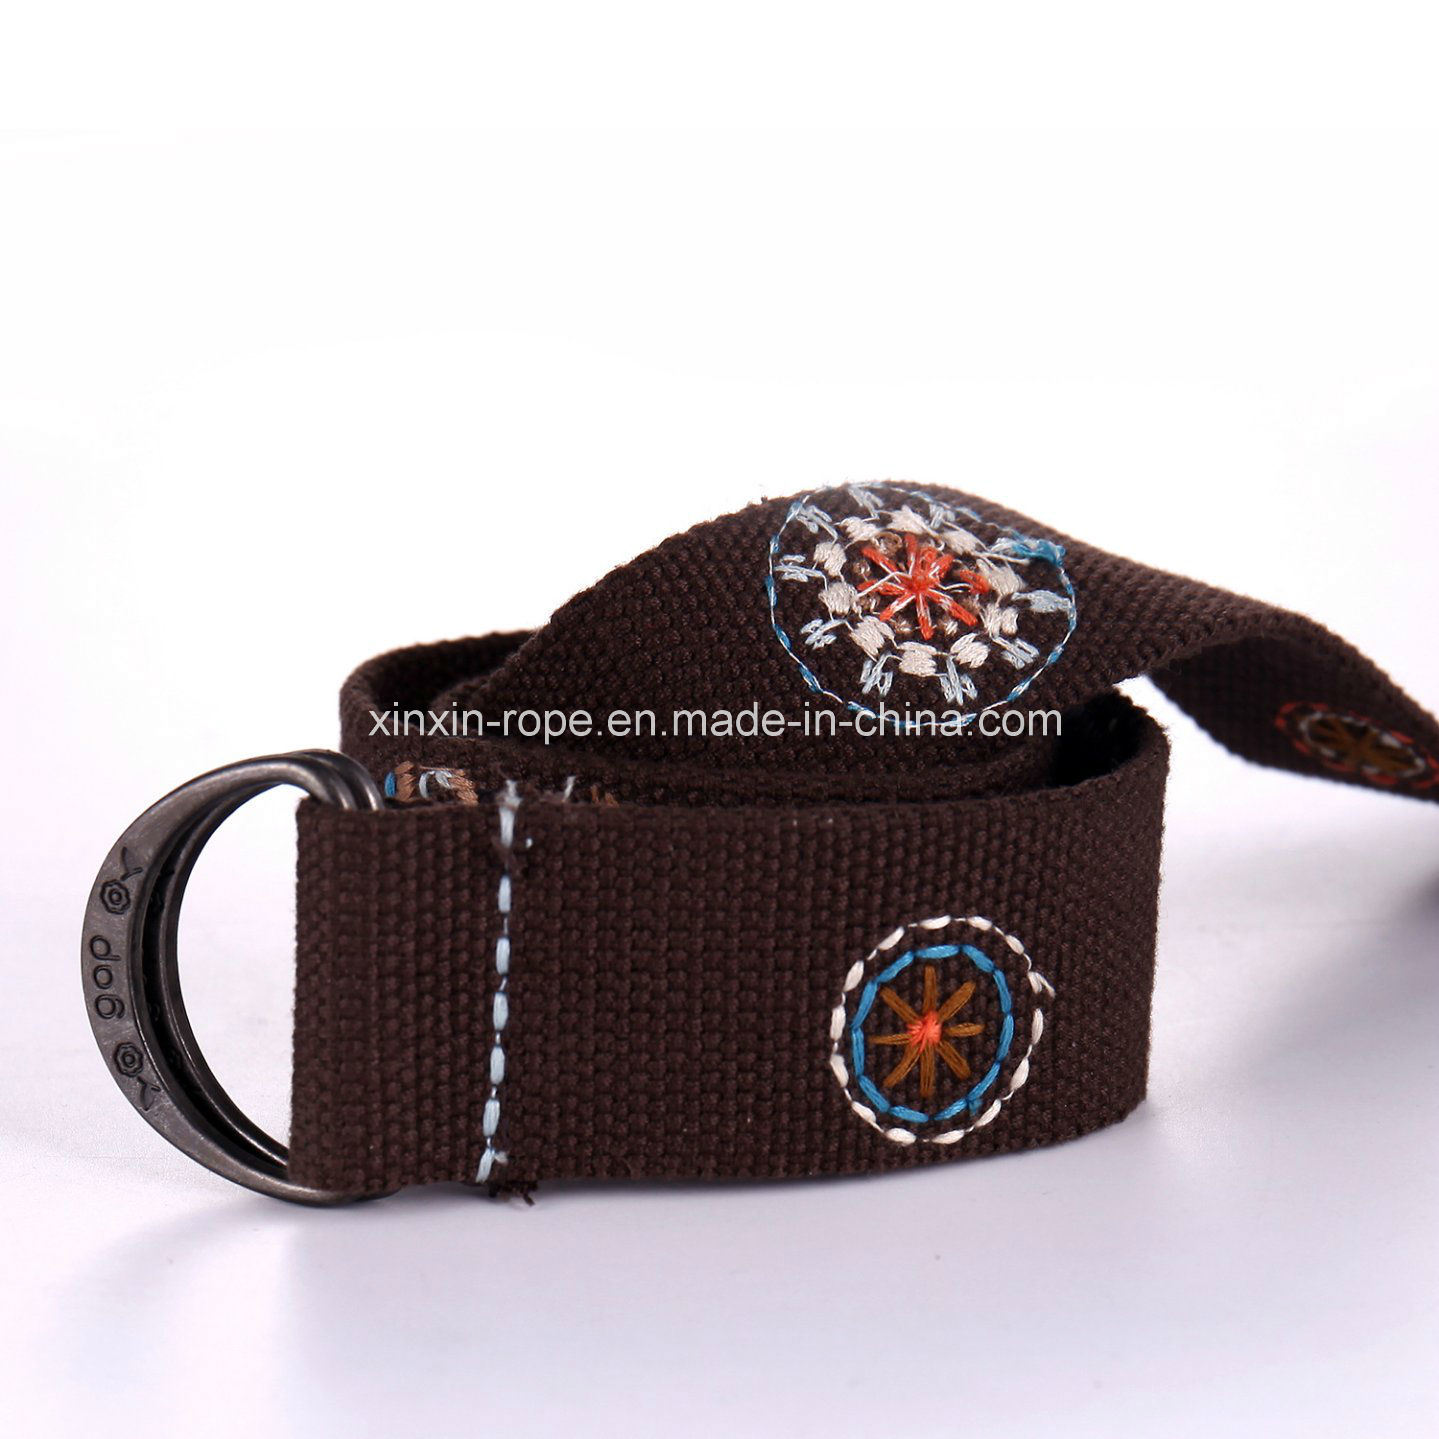 Polyester Customize Braided Woven Double-Ring Buckle Webbing Belt for Adult